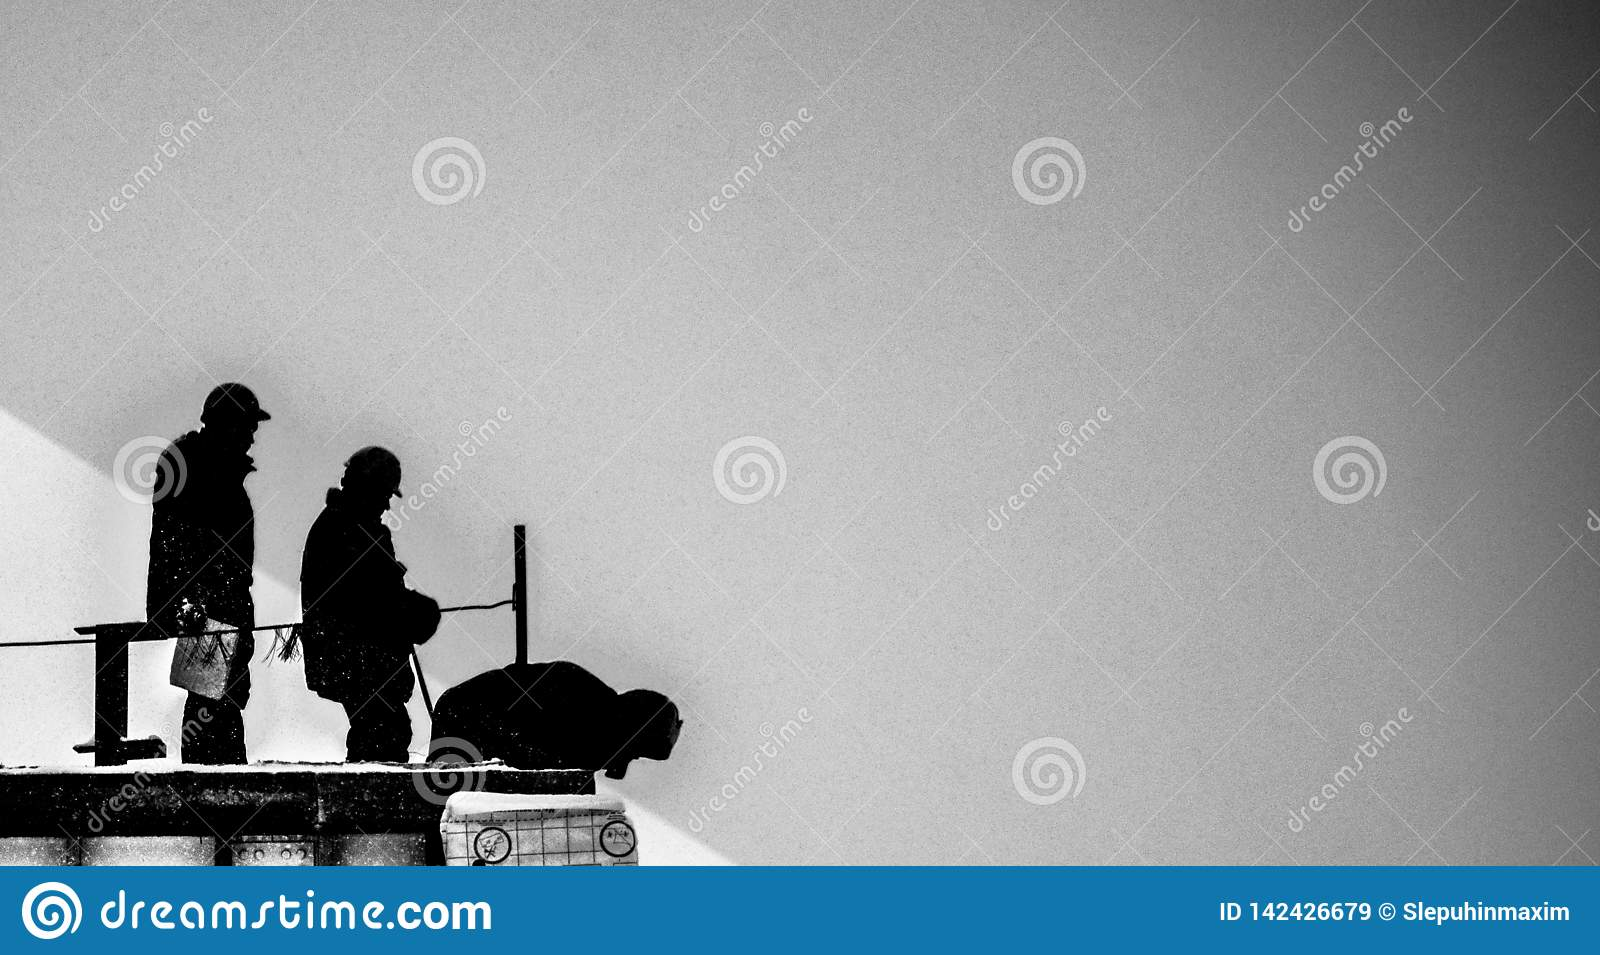 Silhouettes of three builders on a black-and-white background